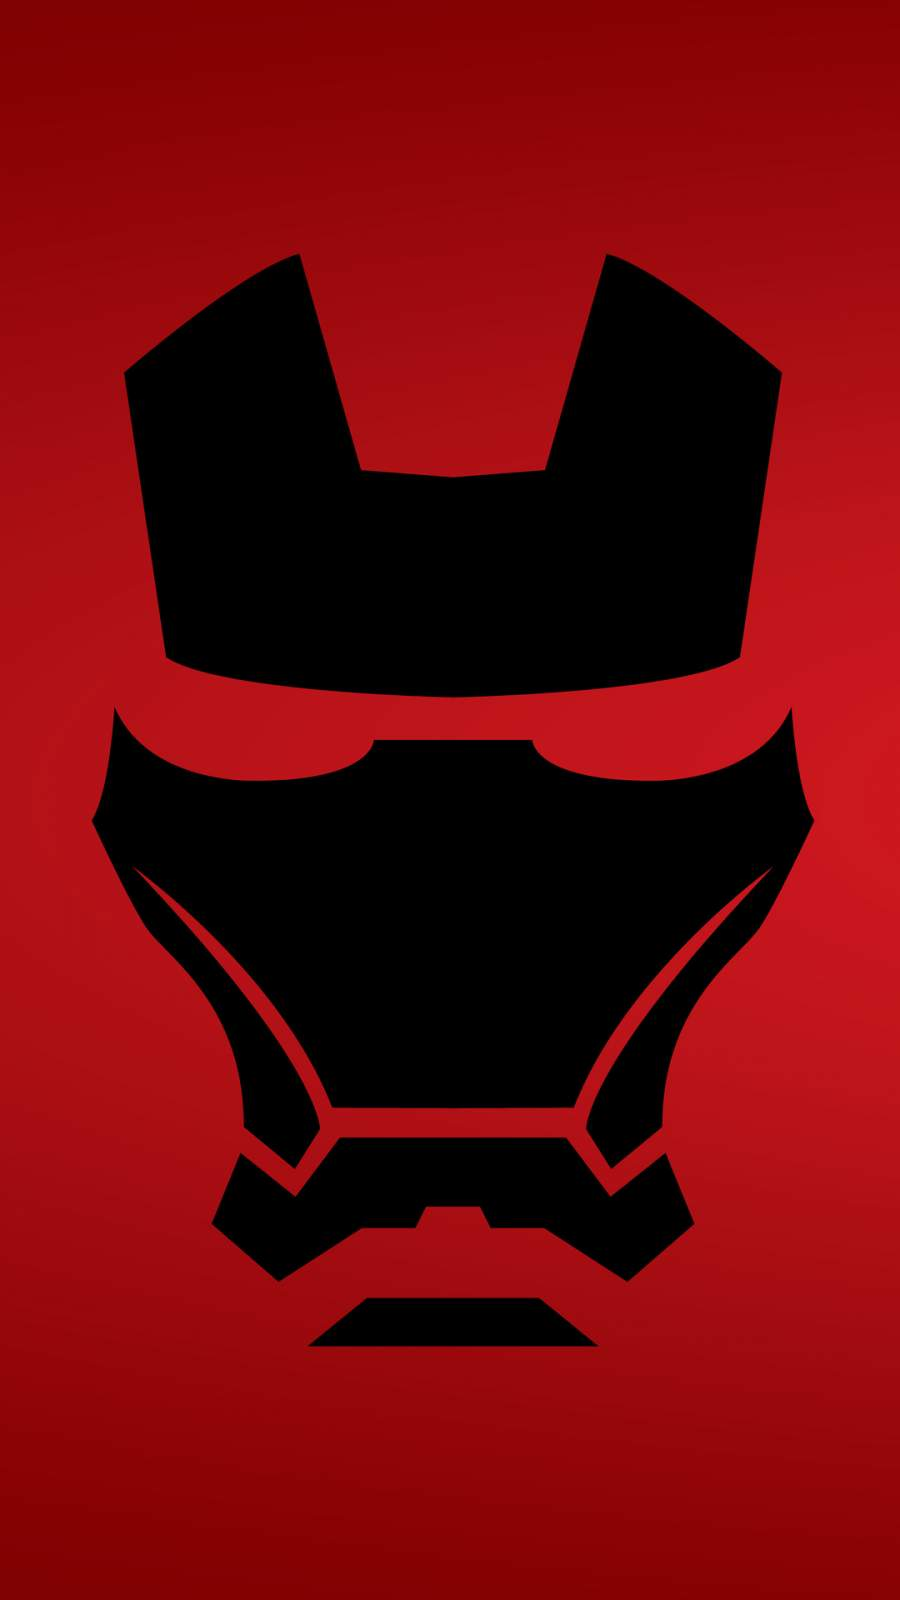 Iron Man Mask Minimalist iPhone Wallpaper